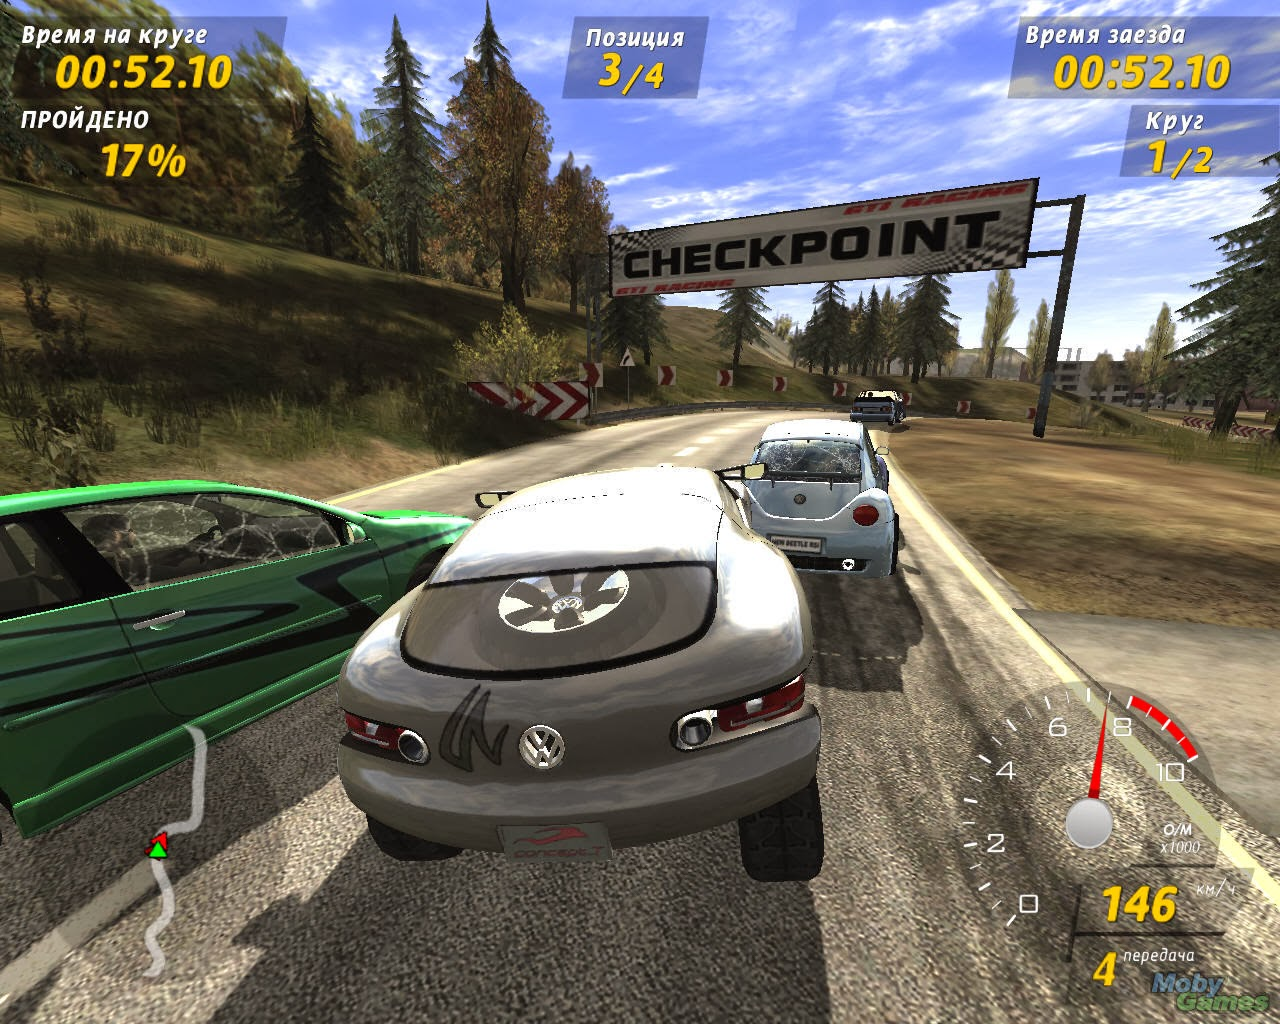 download volkswagen gti racing game for pc pc and mobile soft